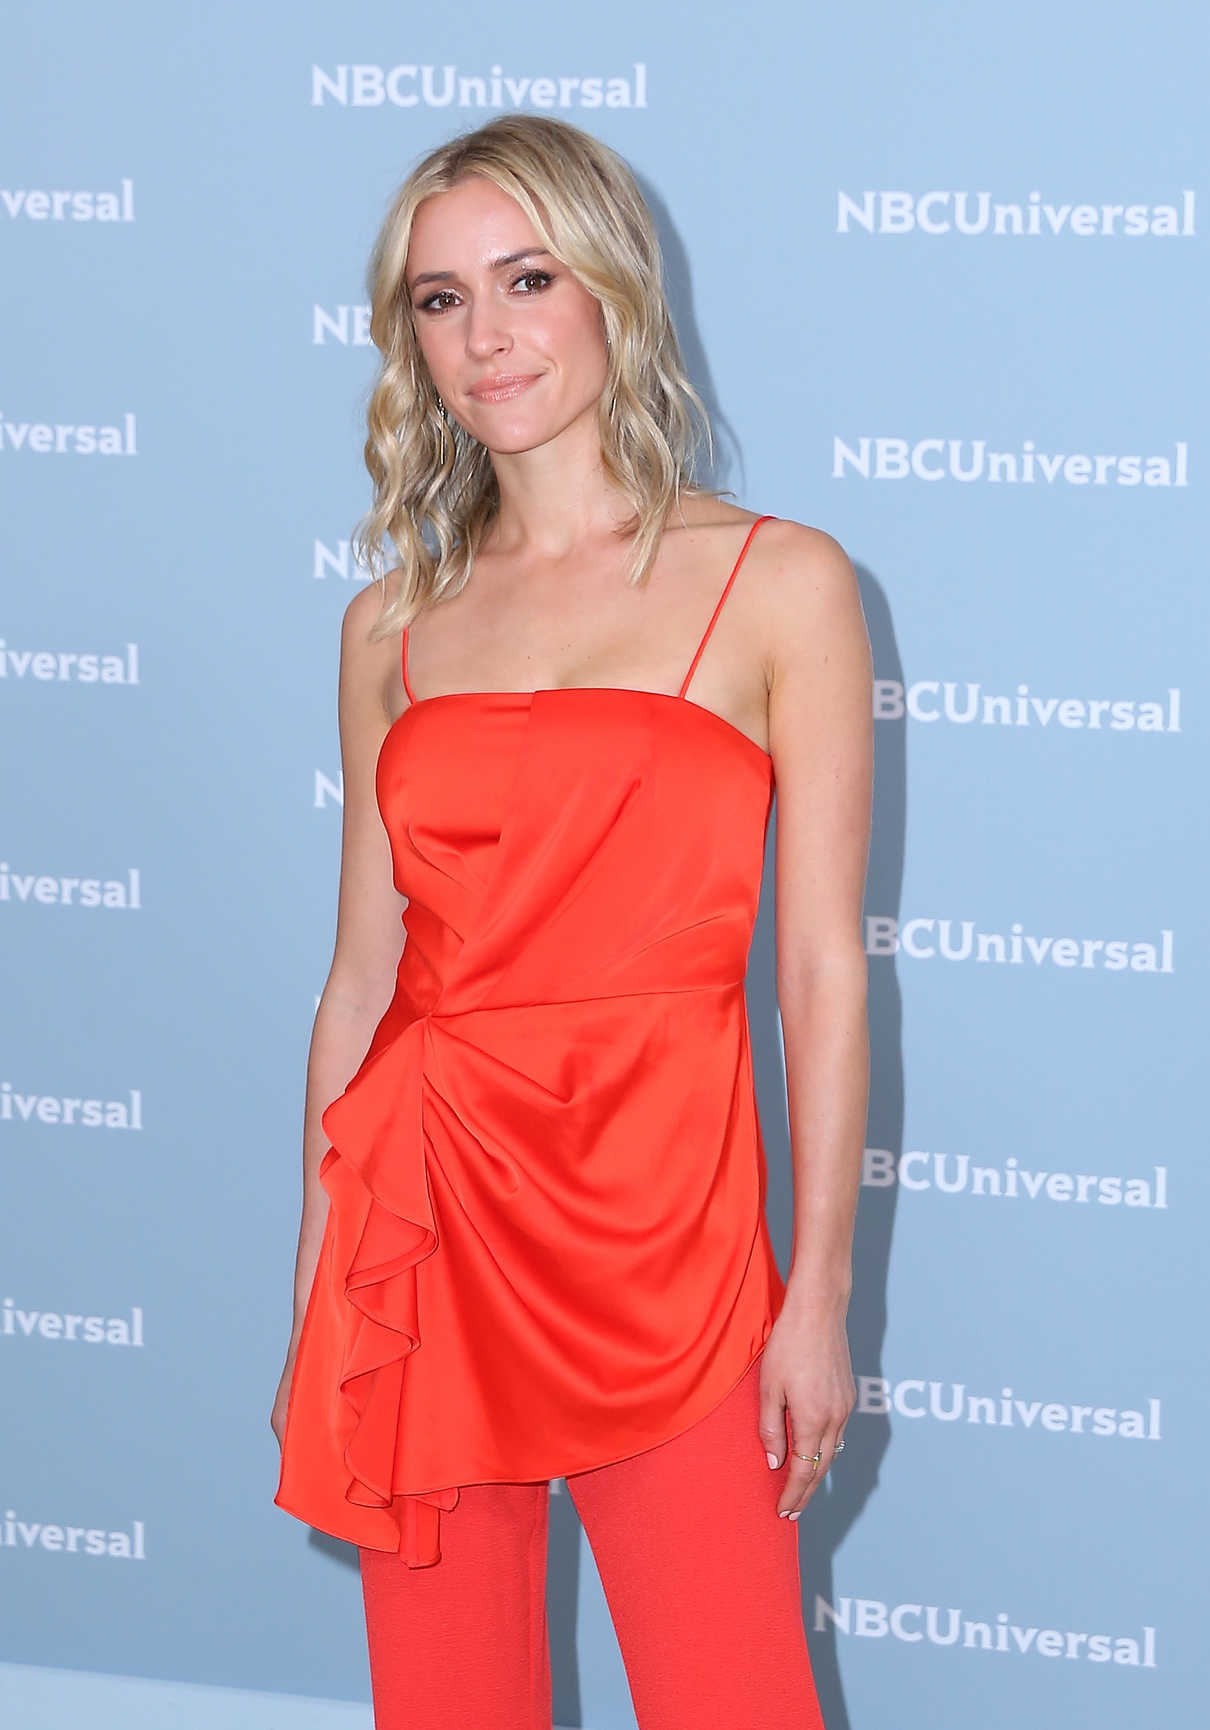 Kristin Cavallari at NBCUniversal Upfront Presentation in New York City 05/14/2018-4